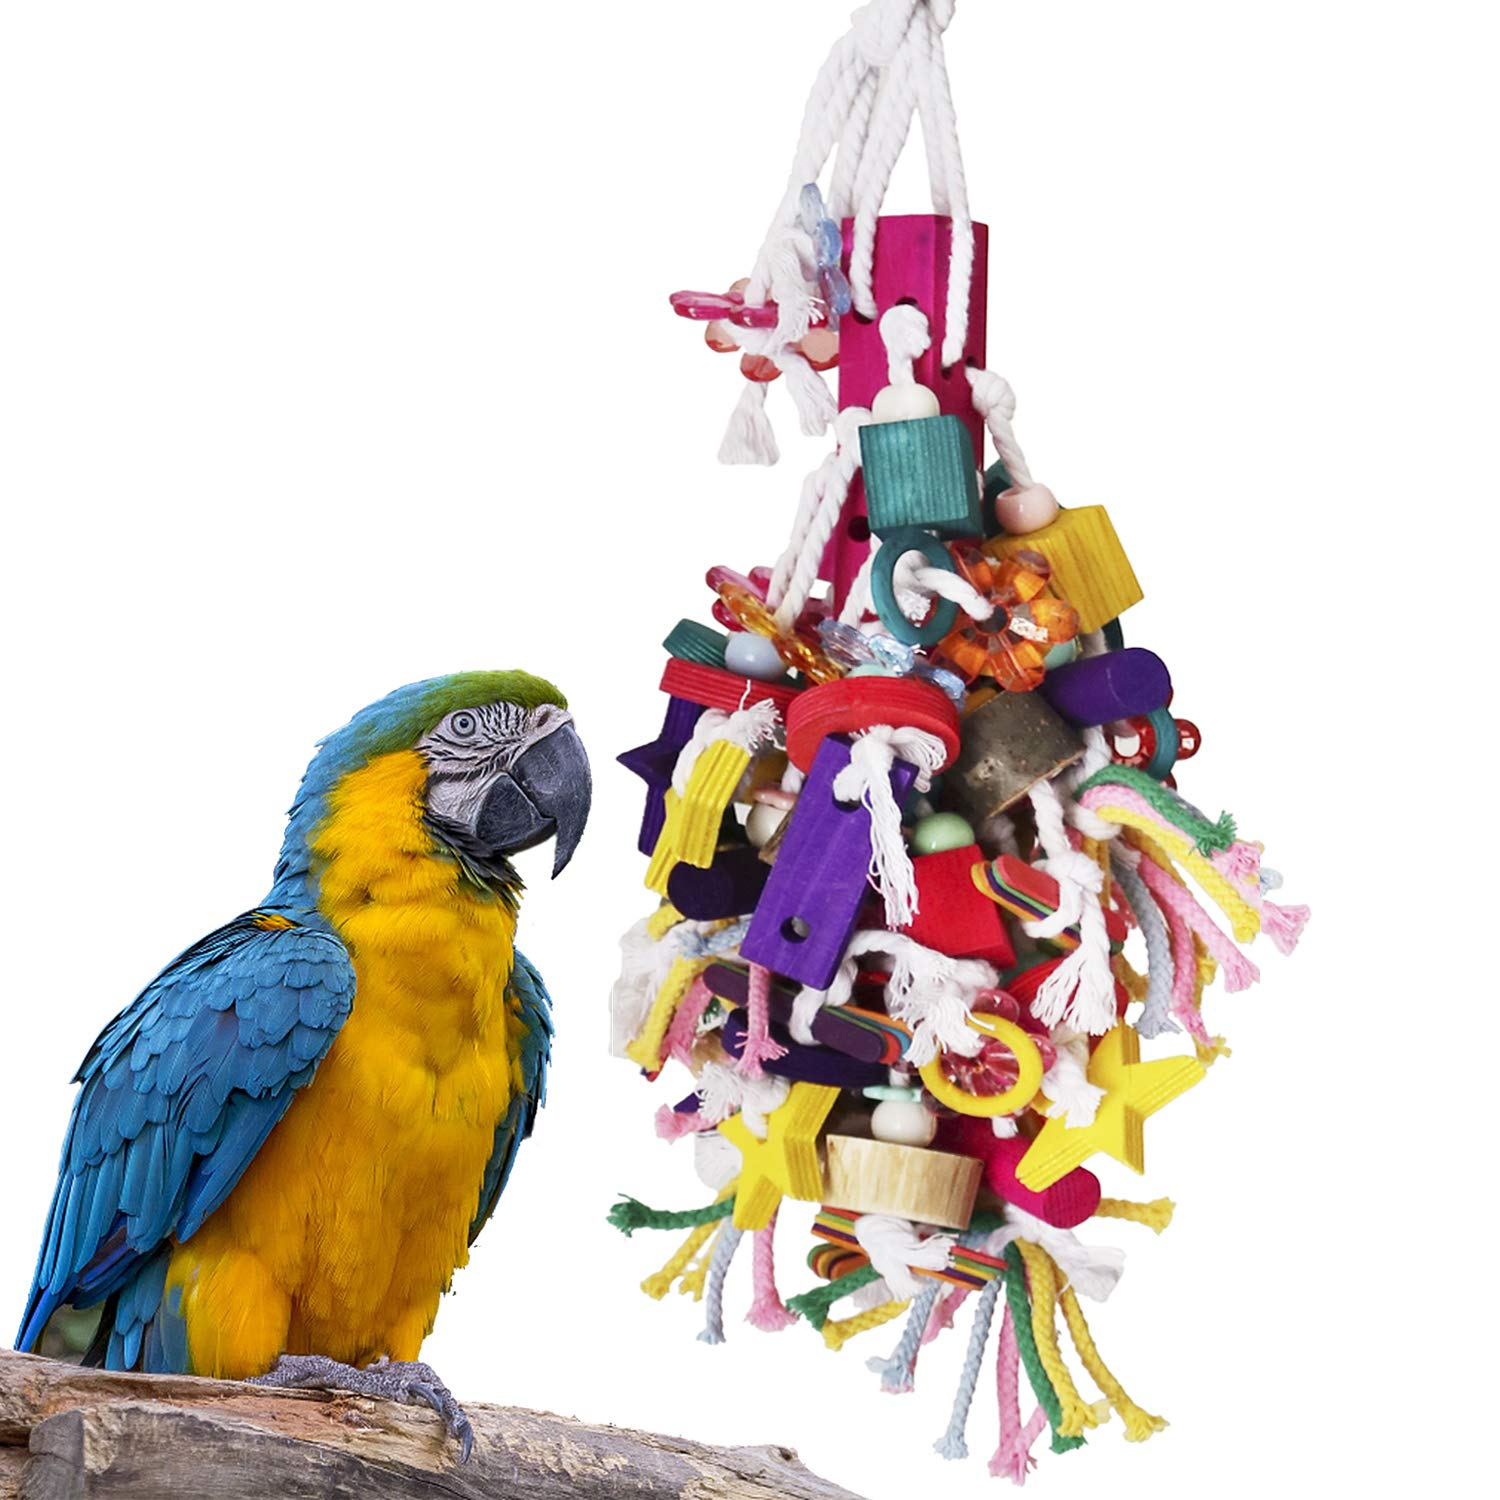 BWOGUE Large Parrot Chew Toy Bird Chewing Toy Multicolored Wooden Blocks Tearing Toys for African Grey Macaws Cockatoos Eclectus Amazon Parrot Birds by BWOGUE